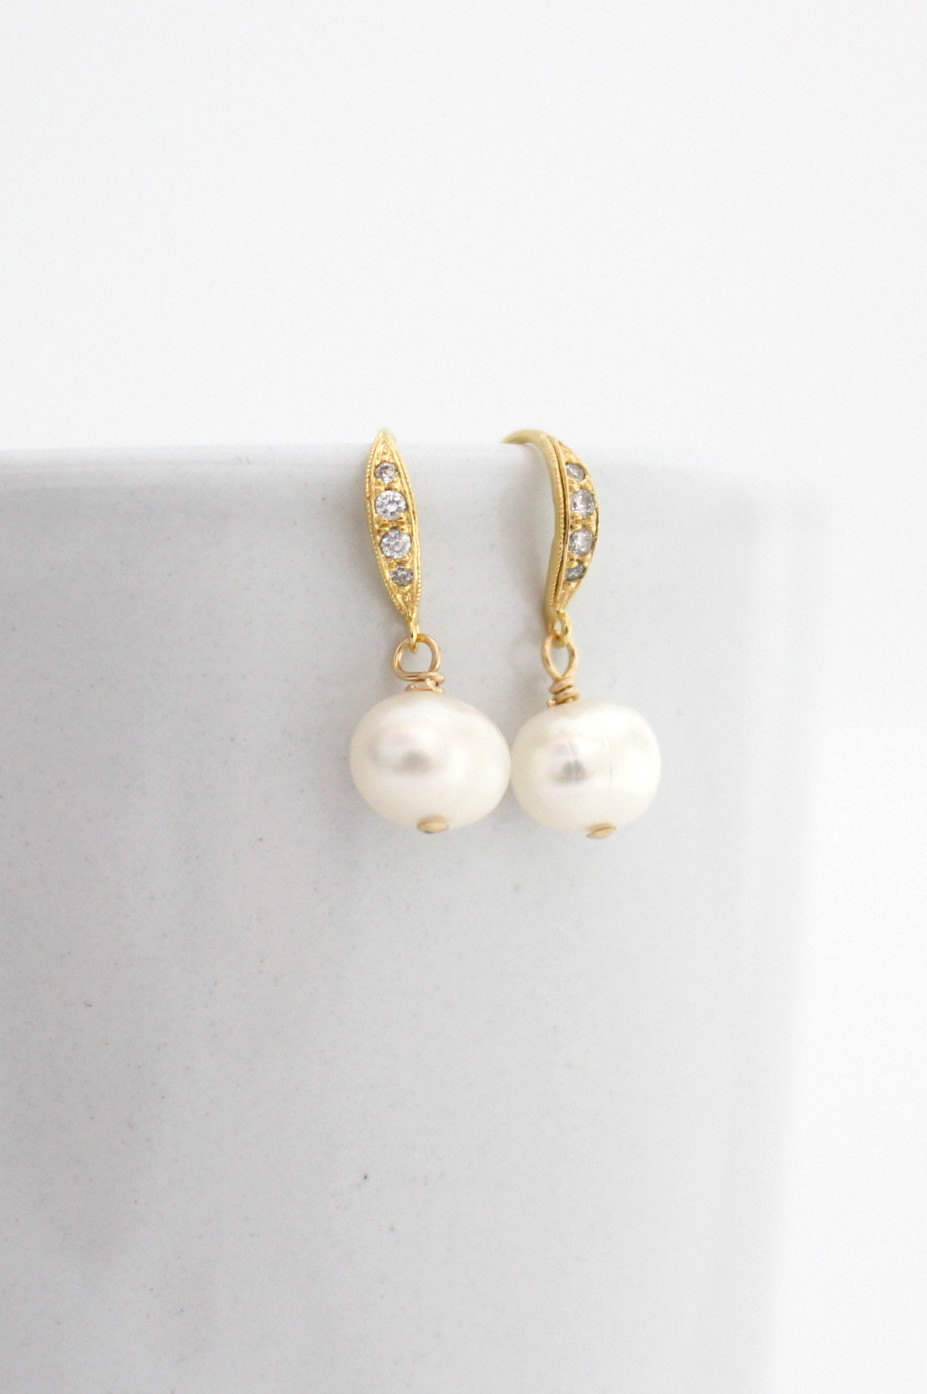 Pearl Earrings - Bridal Earrings